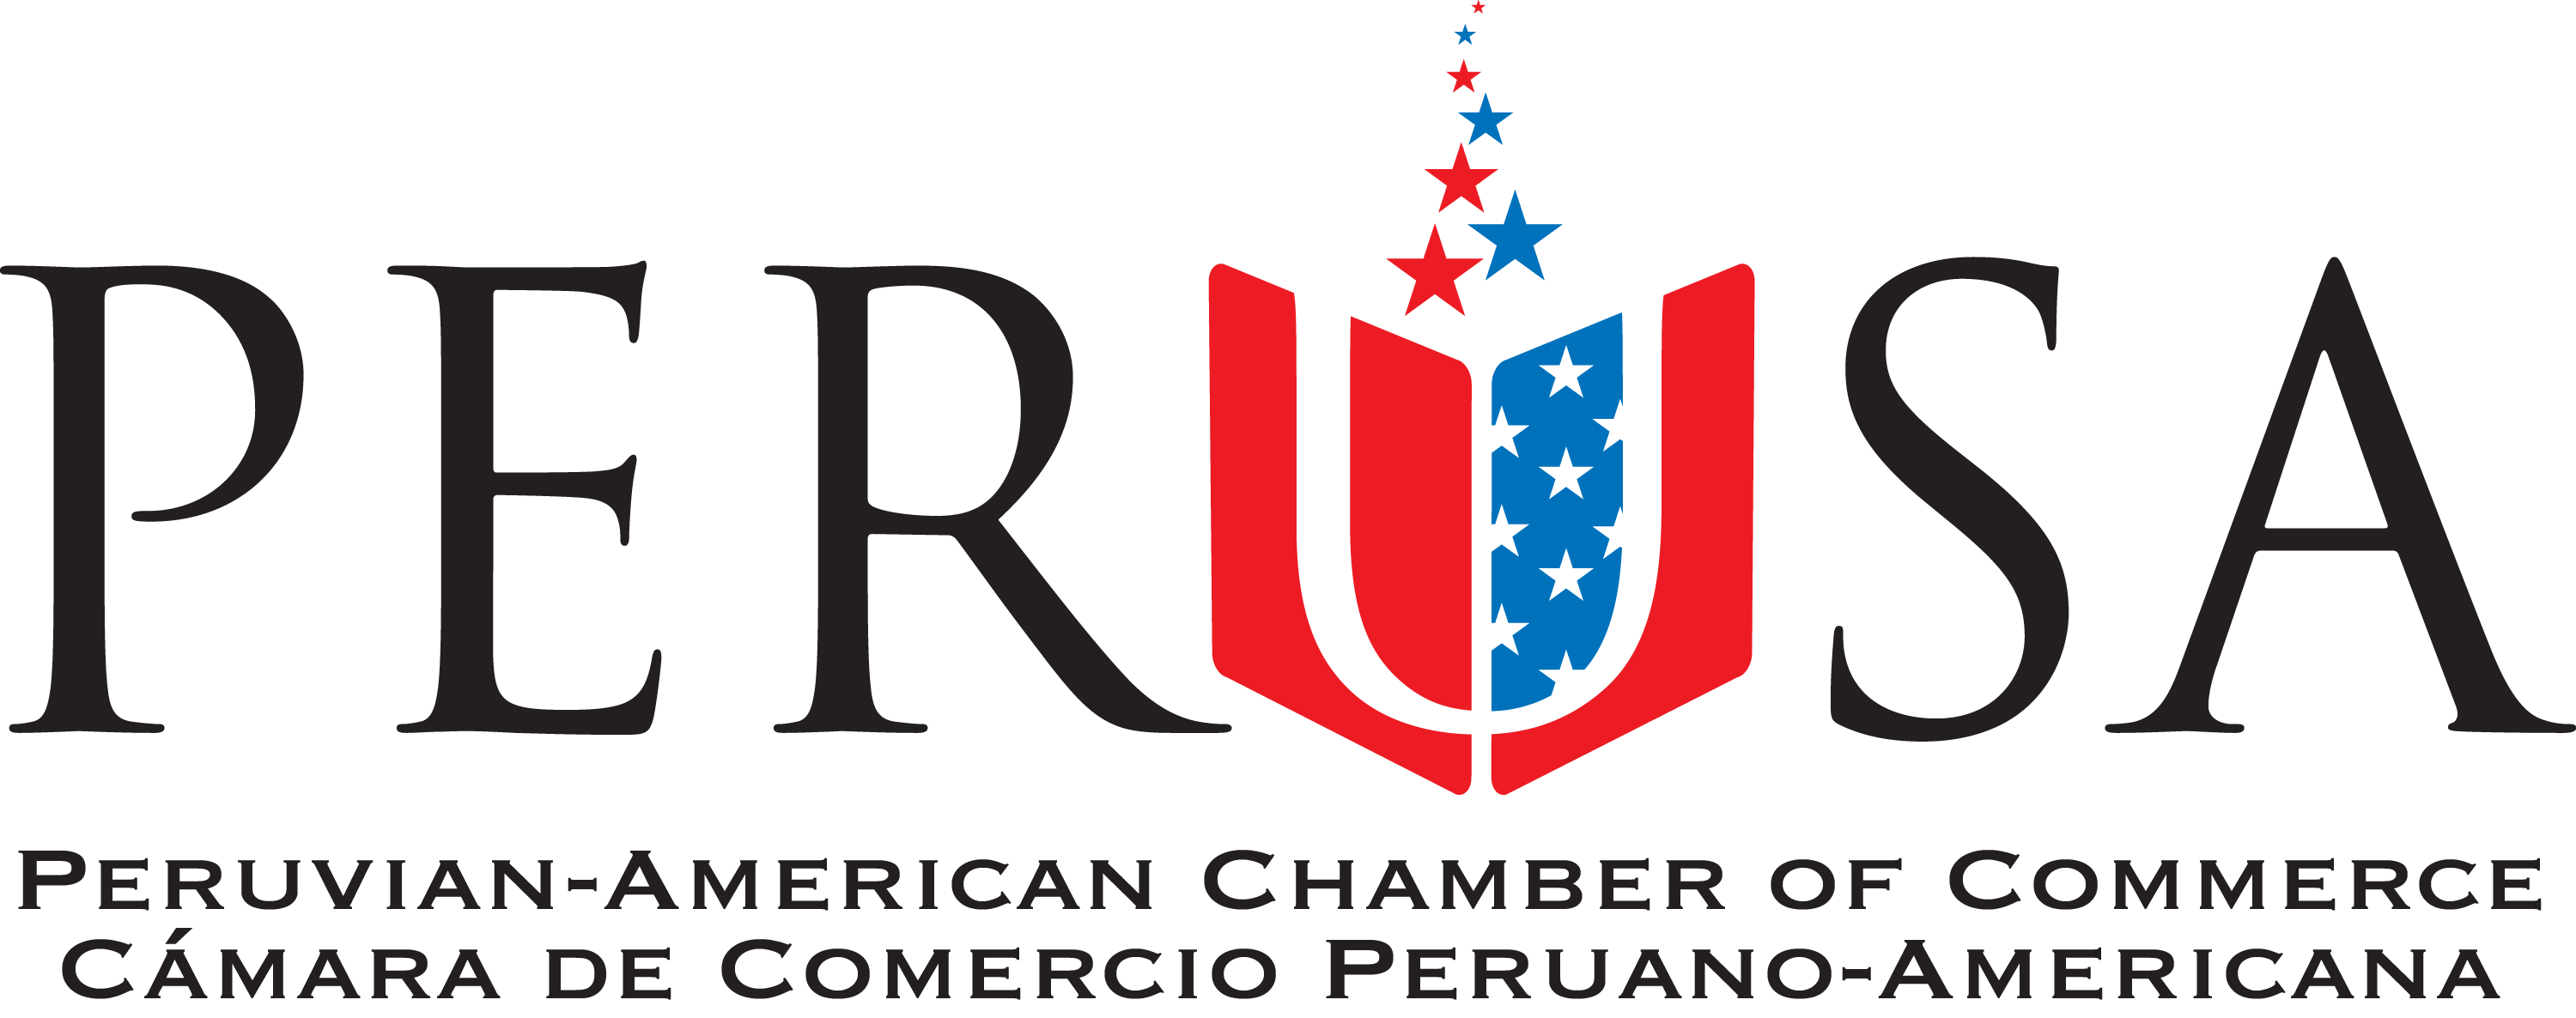 Peruvian American Chamber of Commerce Logo